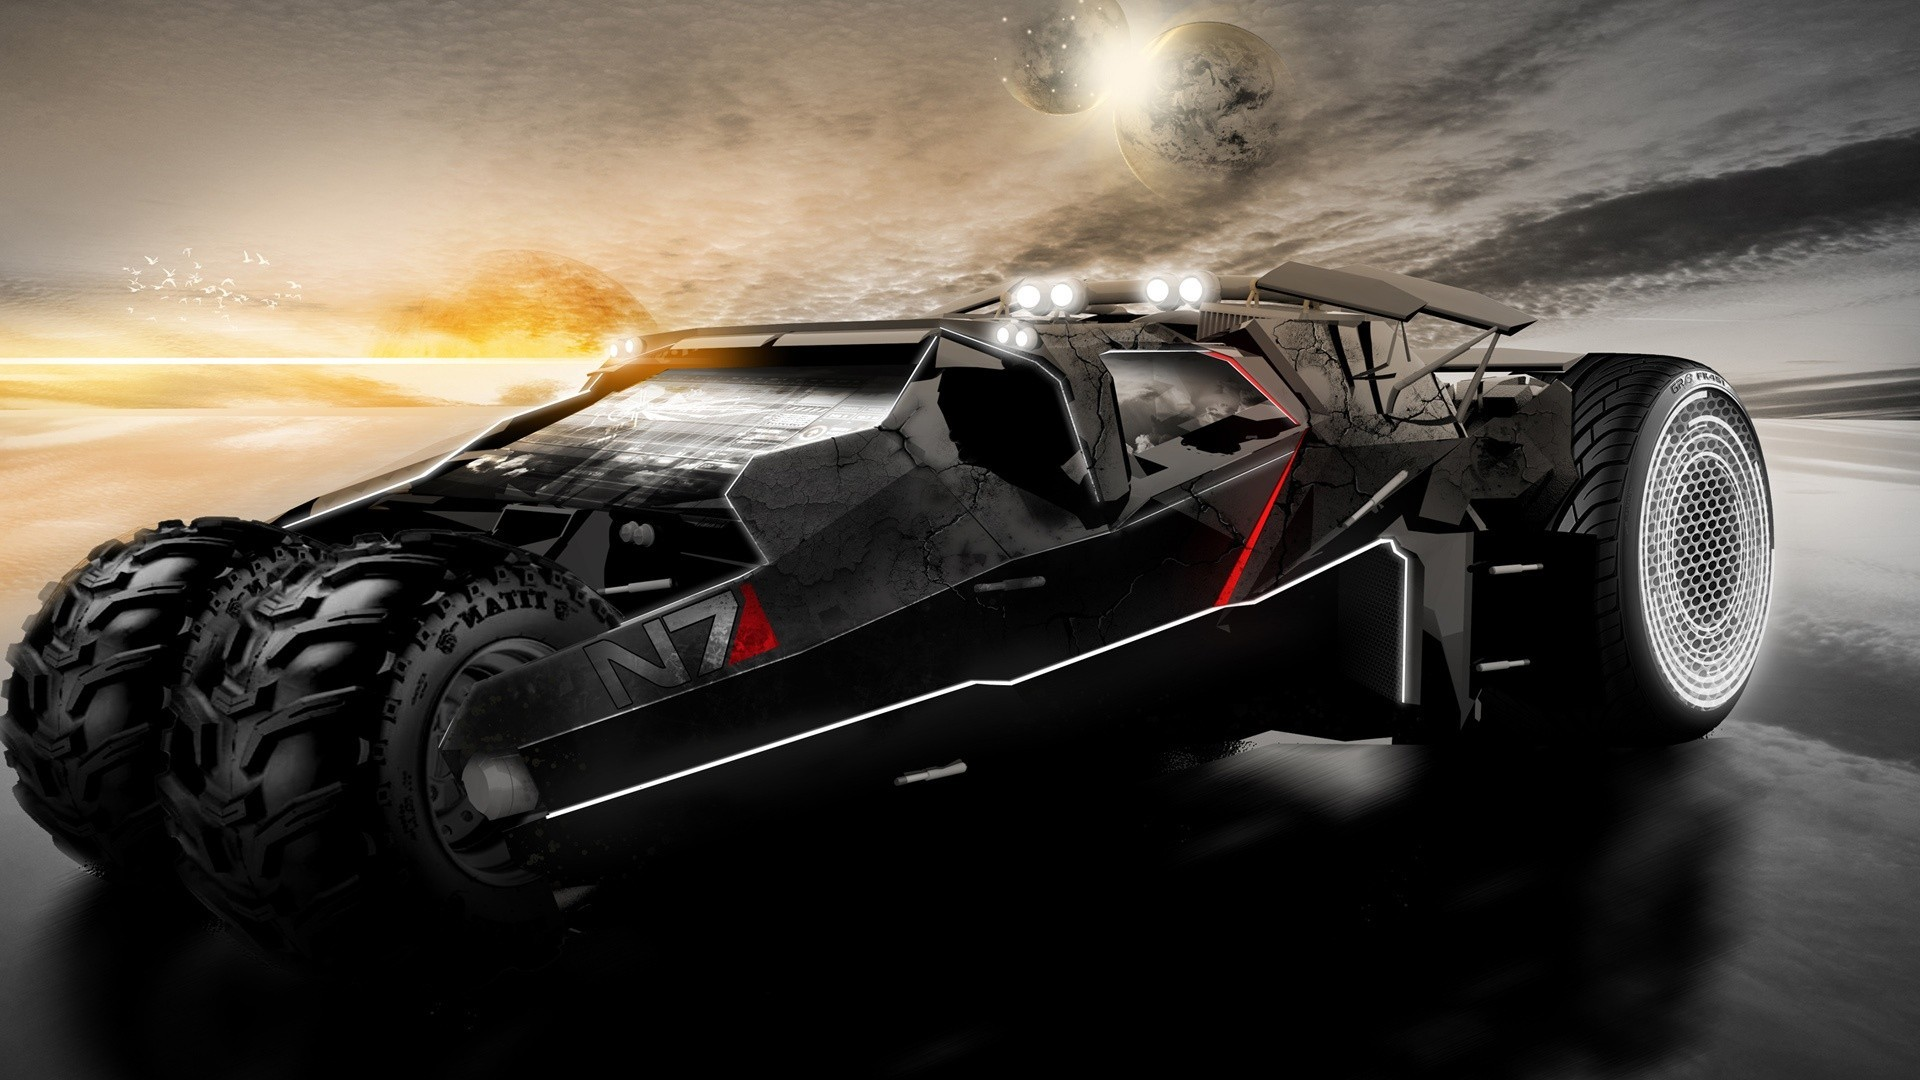 Car HD Wallpapers 1080p (67+ pictures)